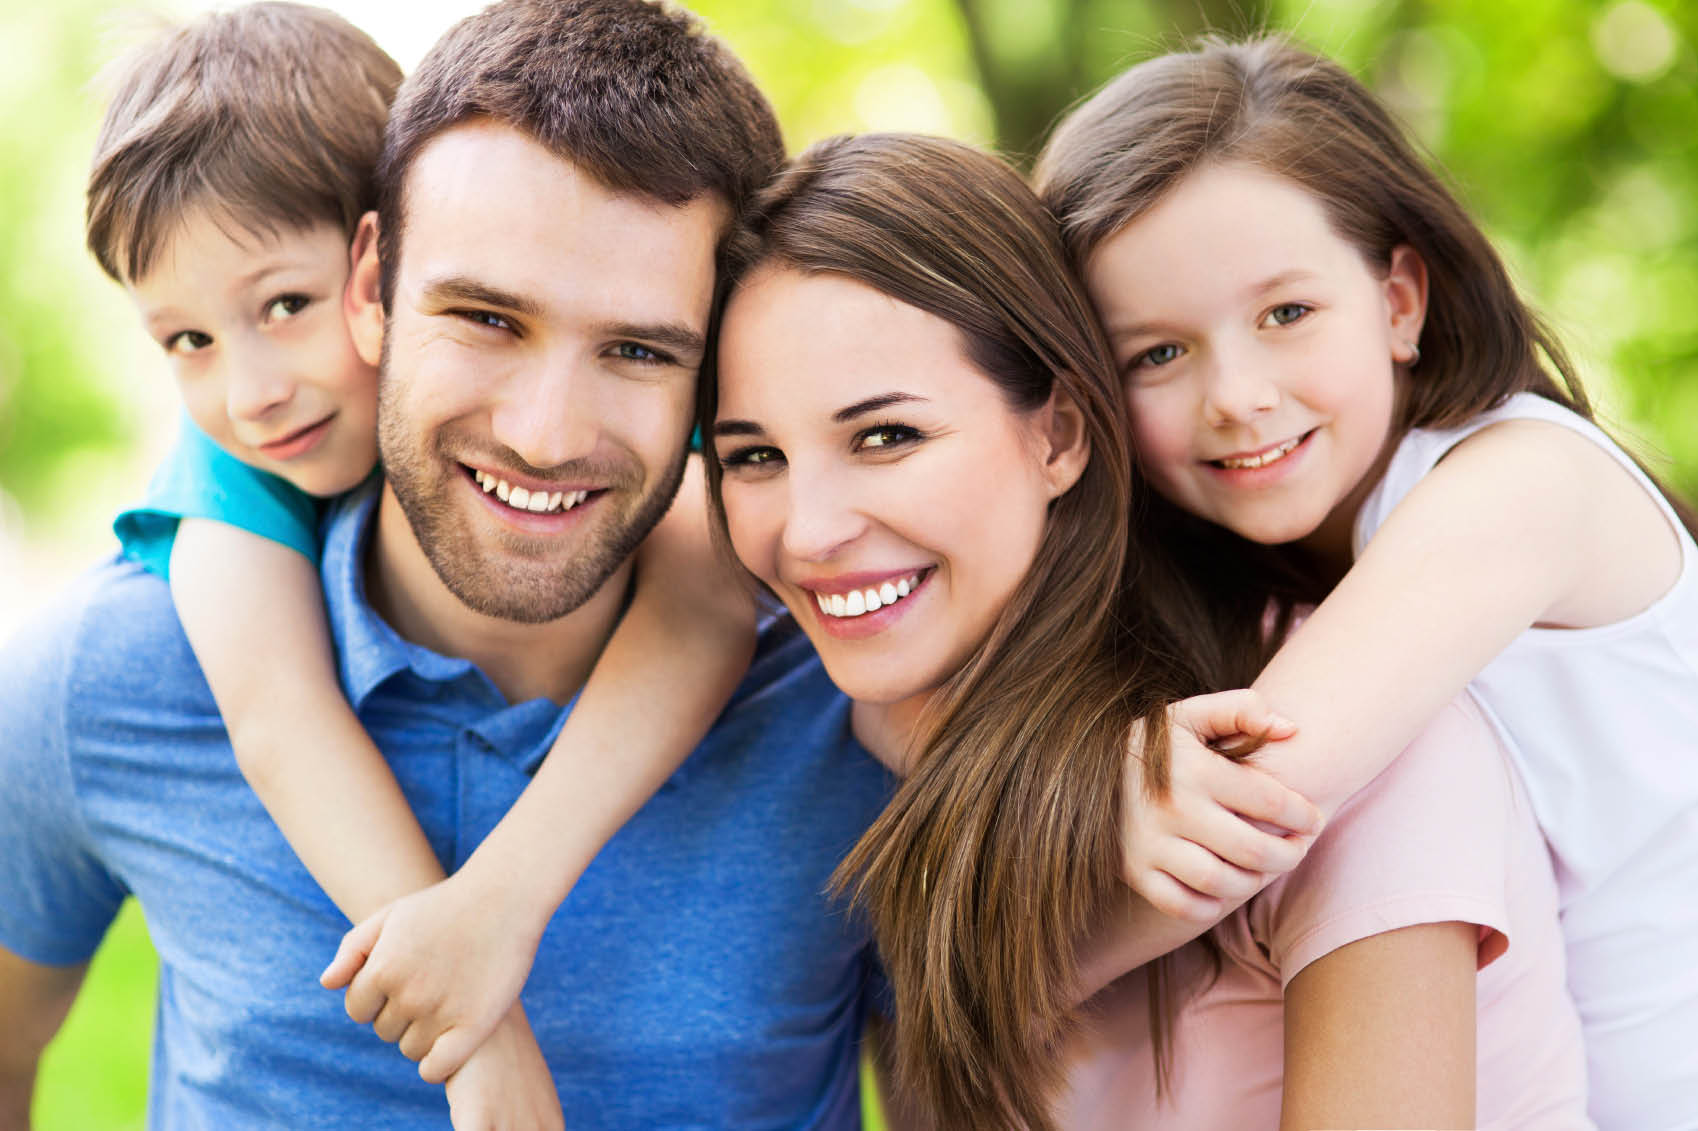 Parkland Smile Dental - Dentistry for the entire family - dentistry for kids and adults - Tacoma, WA - Parkland, WA